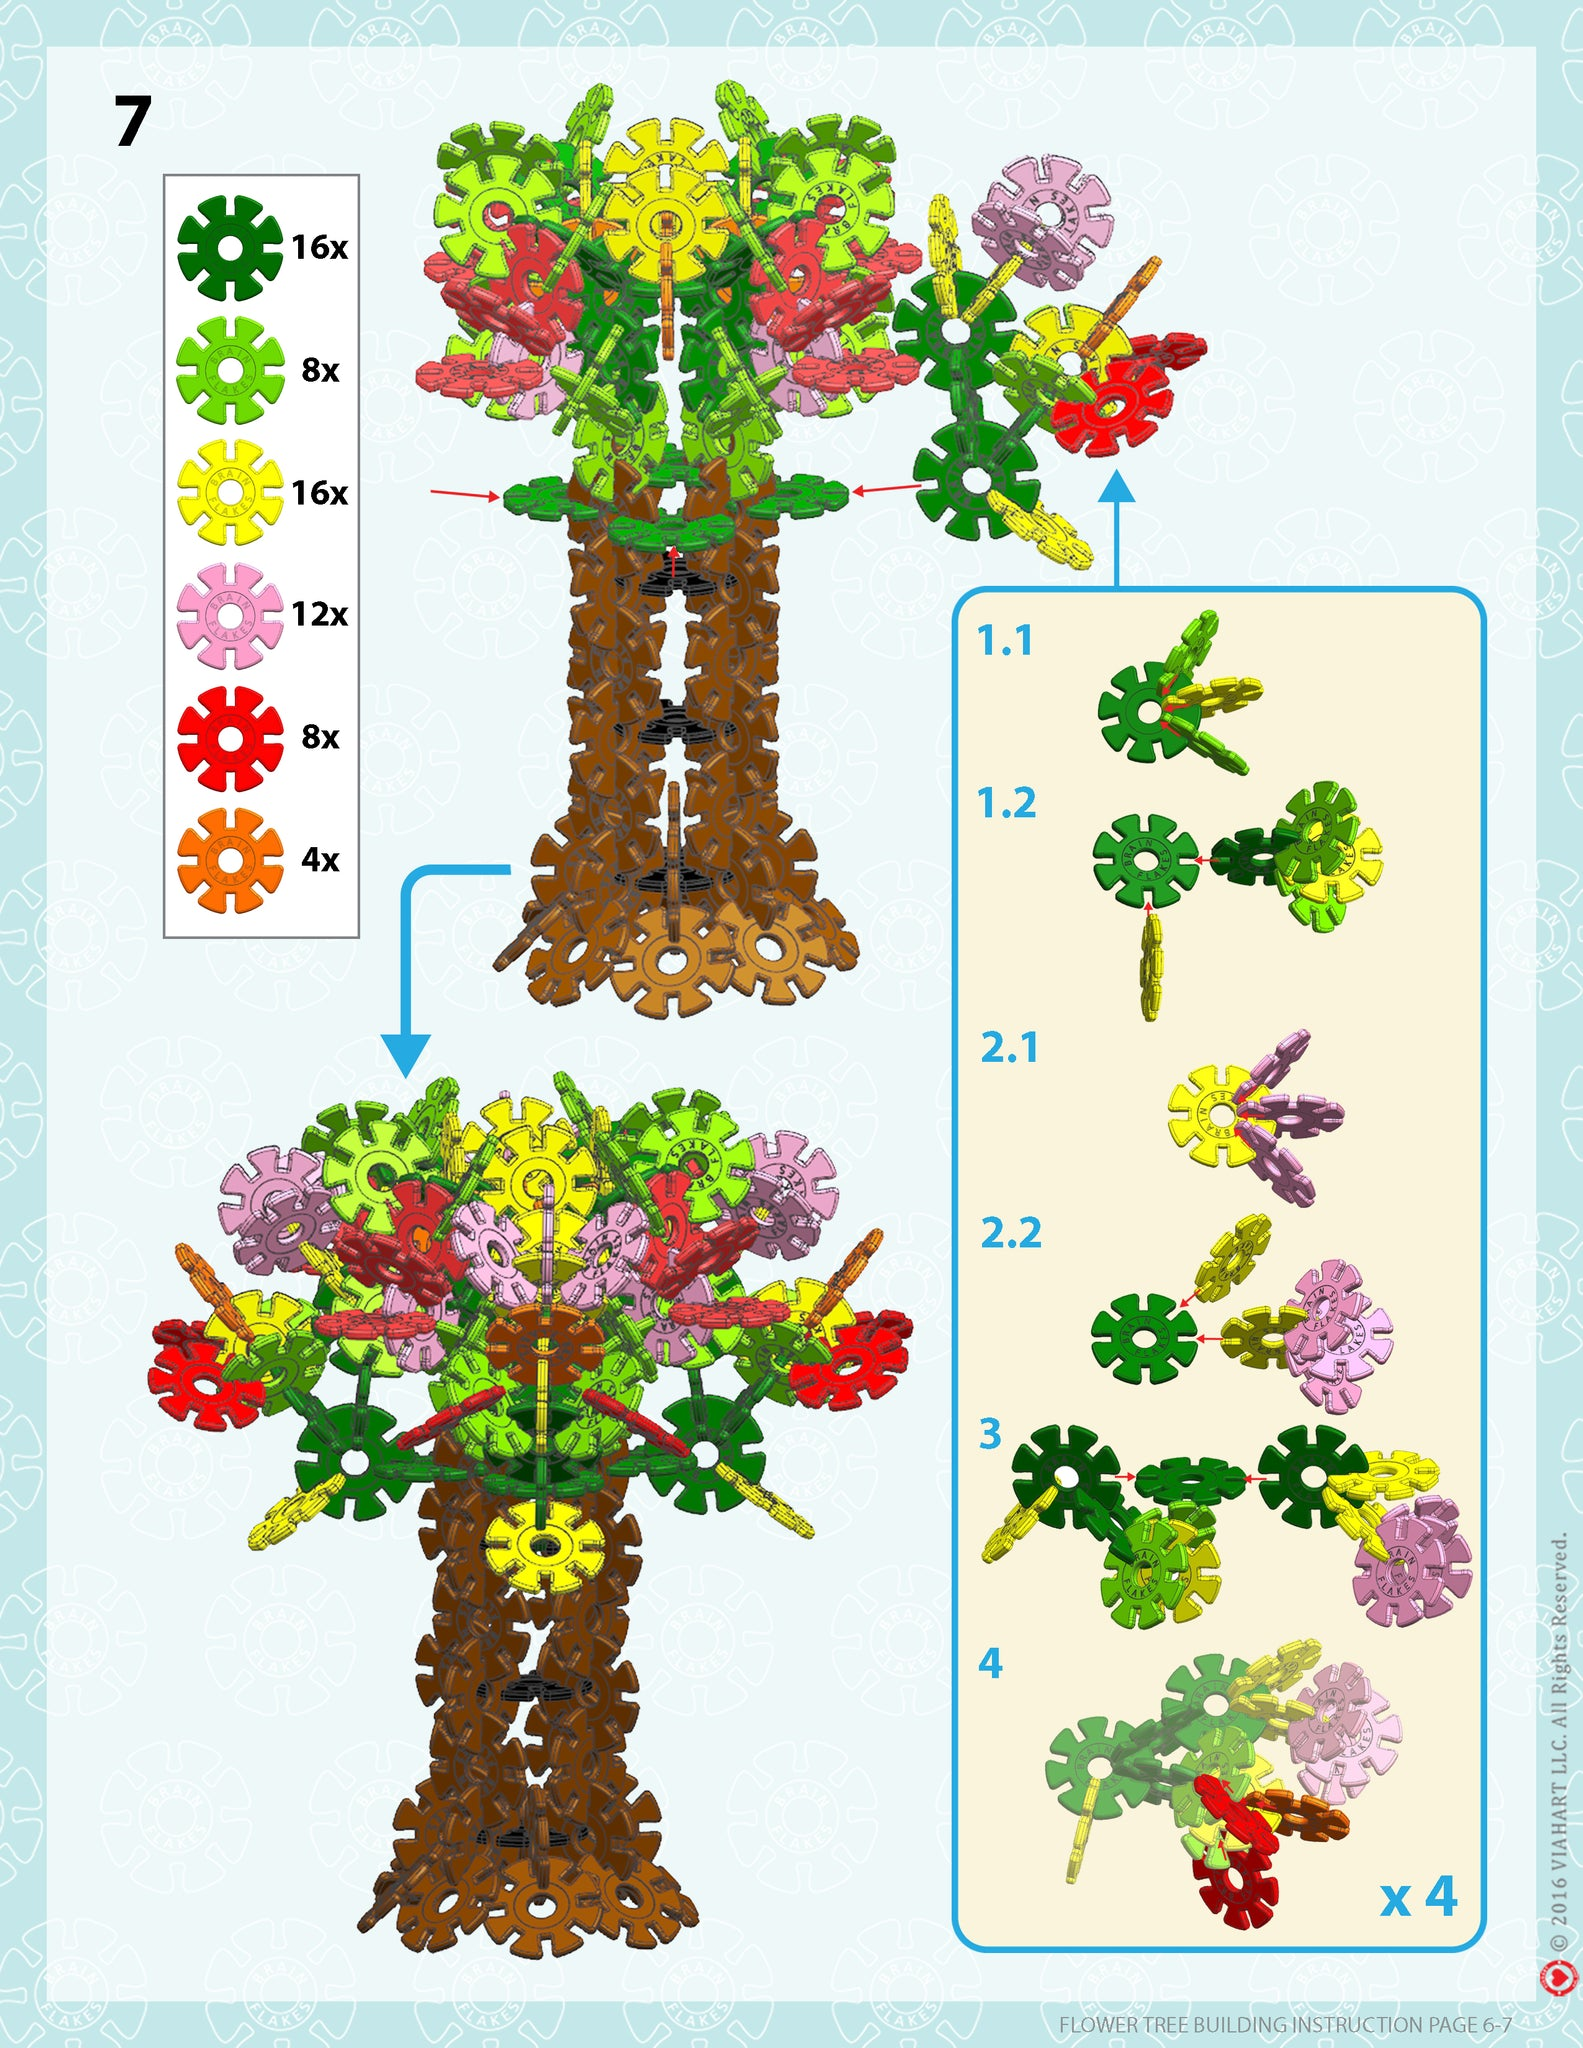 Brain Flakes Tree building instructions 6